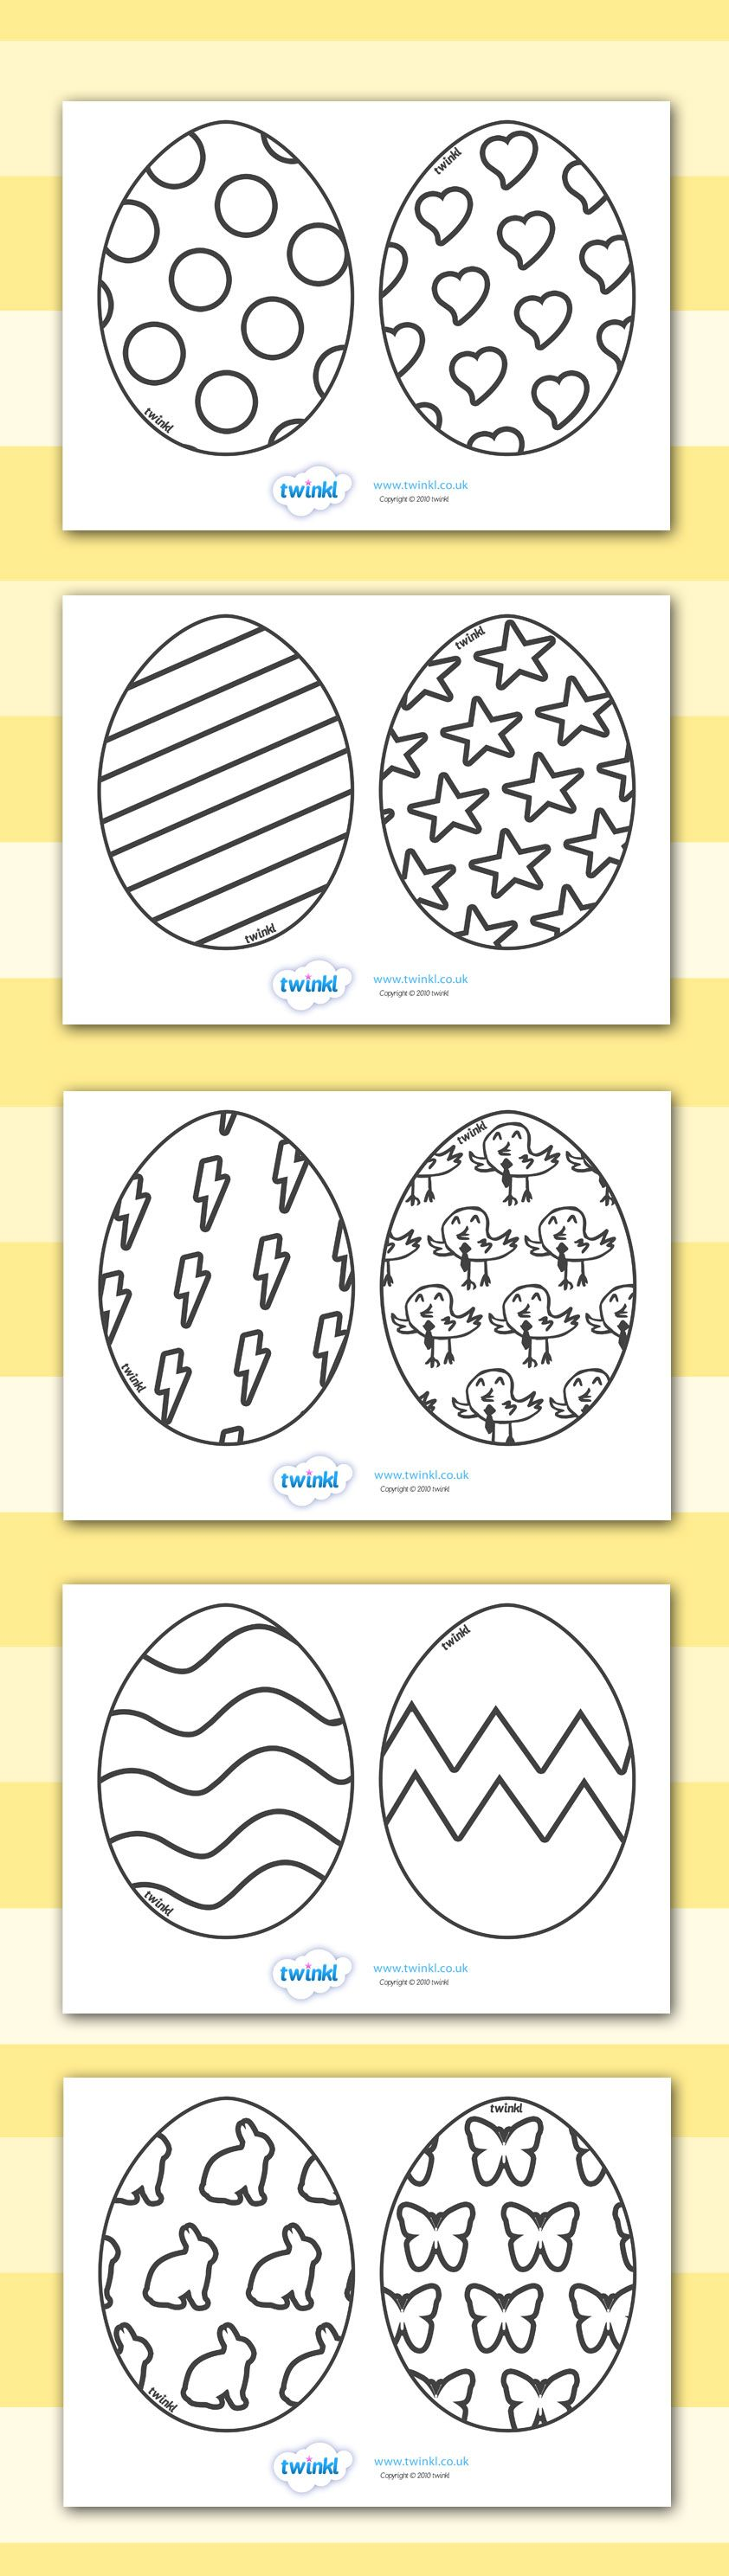 Twinkl Resources >> Easter Egg Templates >> Printable